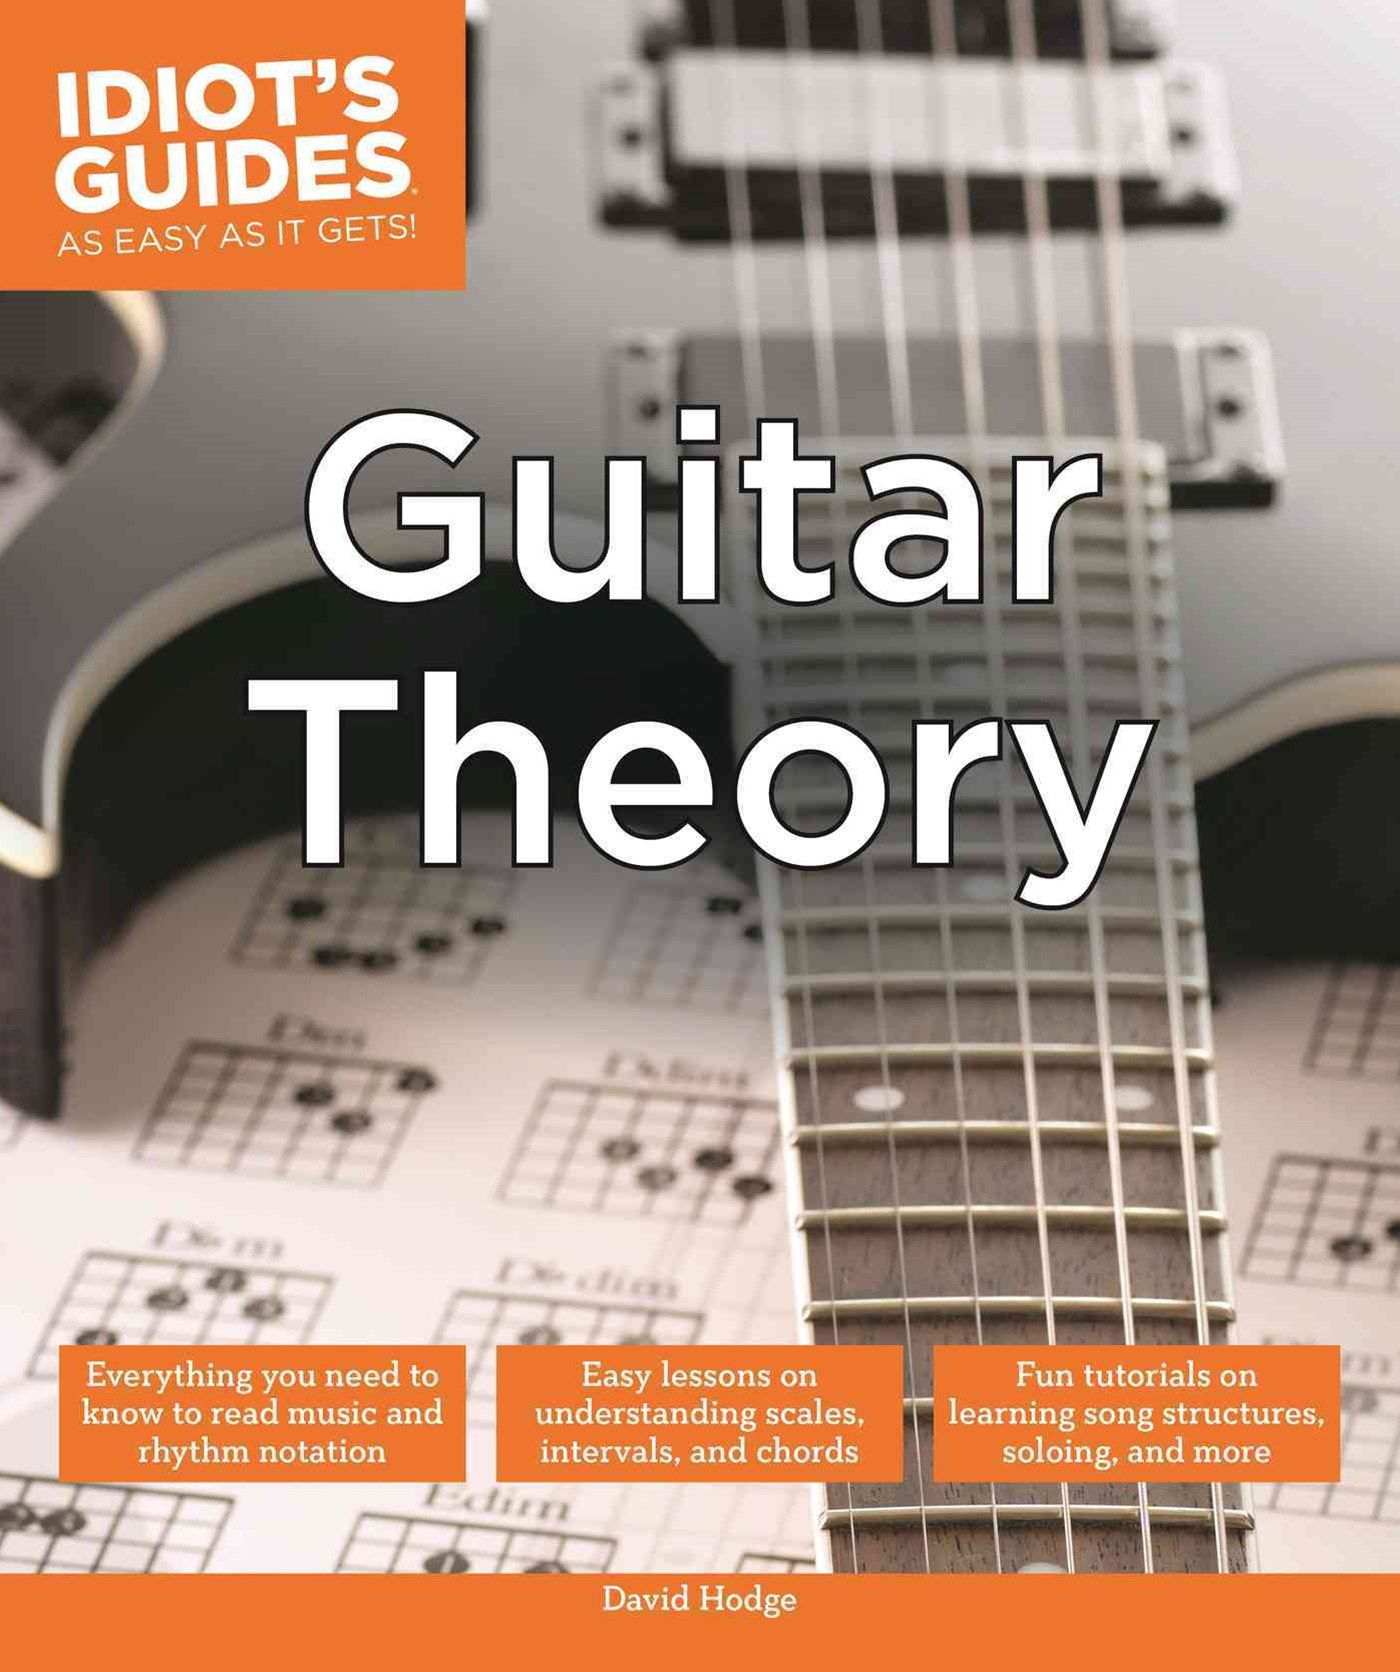 Idiot's Guides - Guitar Theory